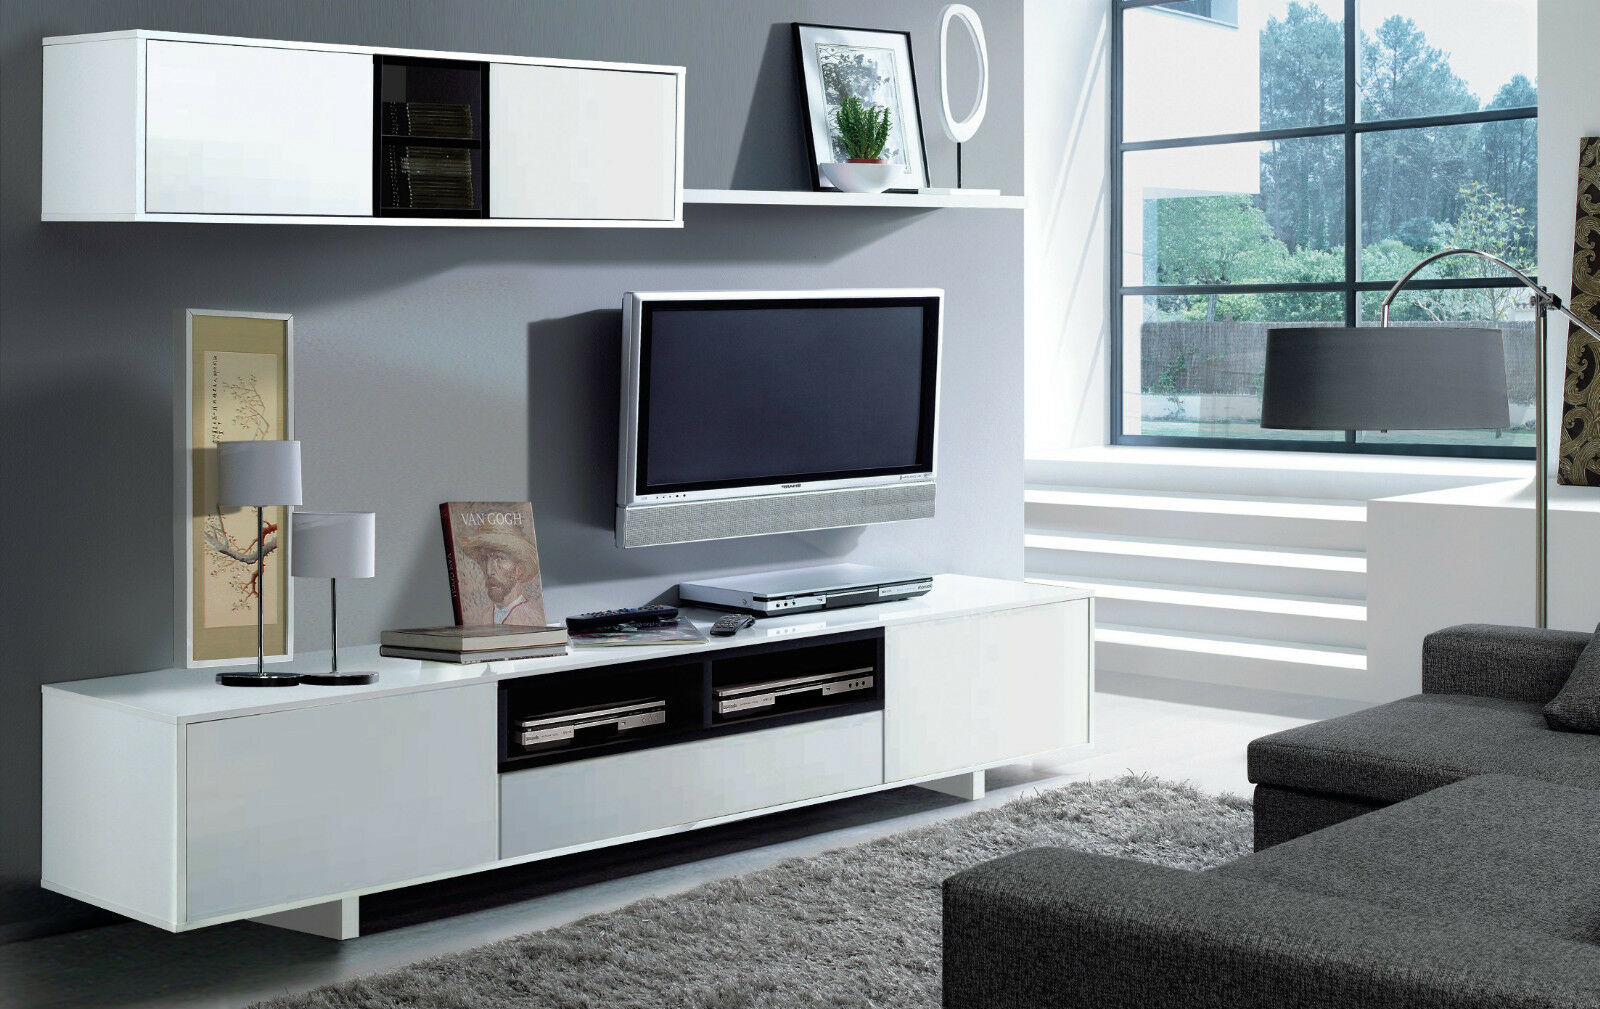 Modern complete wall tv entertainment unit cabinet grey black white gloss ebay - Muebles de valencia fabricantes ...